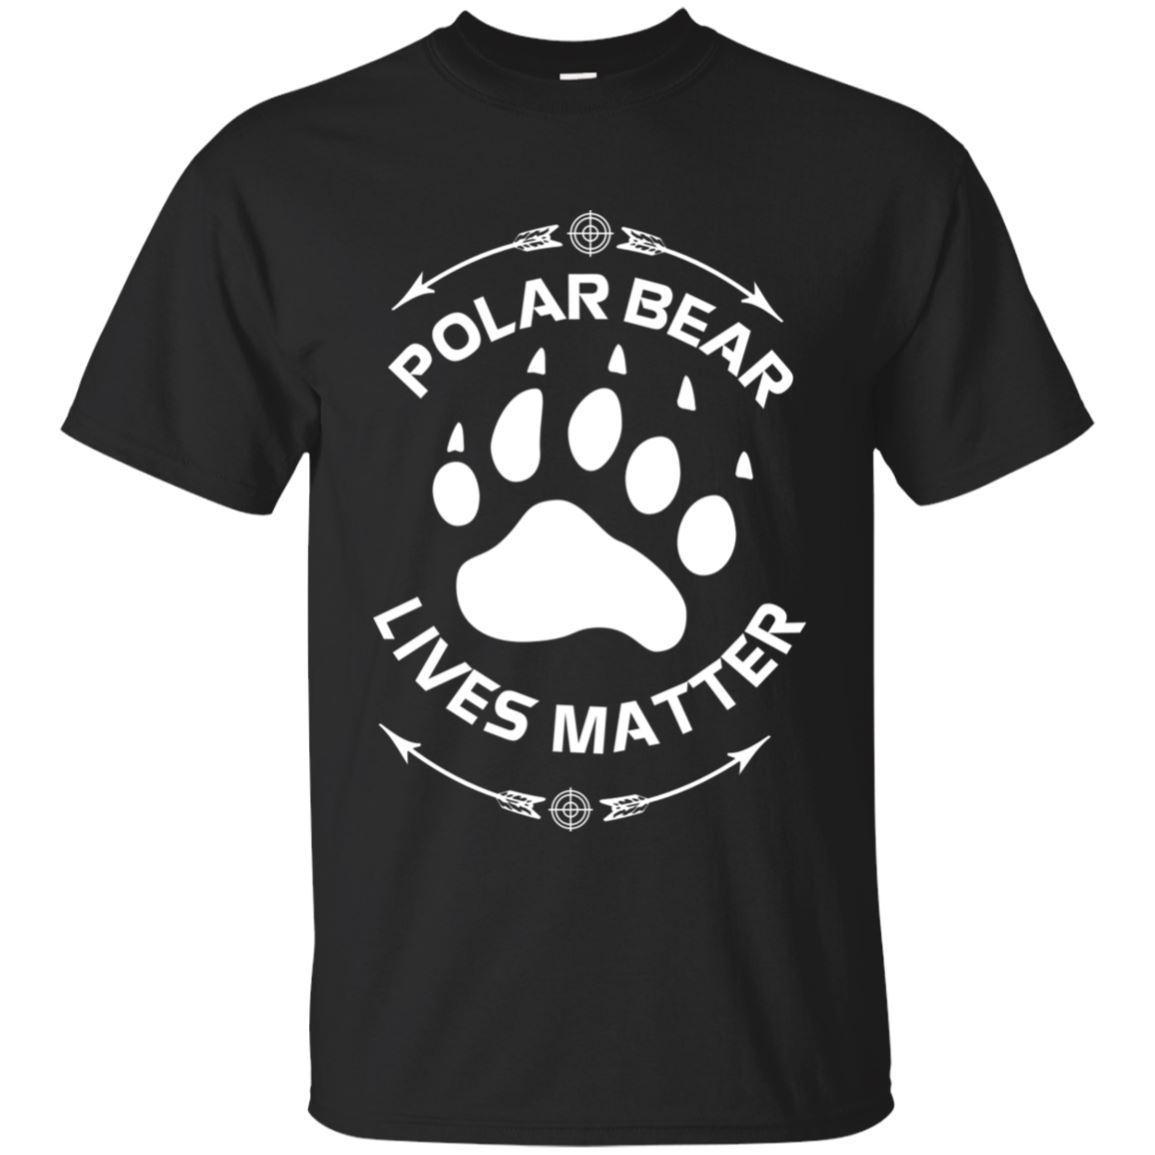 9eba3b68a6c Animal Lover Polar Bear Lives Matter Save The Bears T ShirtFunny Unisex  Casual Tshirt Top Long Sleeve Tee Shirts Design Your Own T Shirts From  Jodeclothes